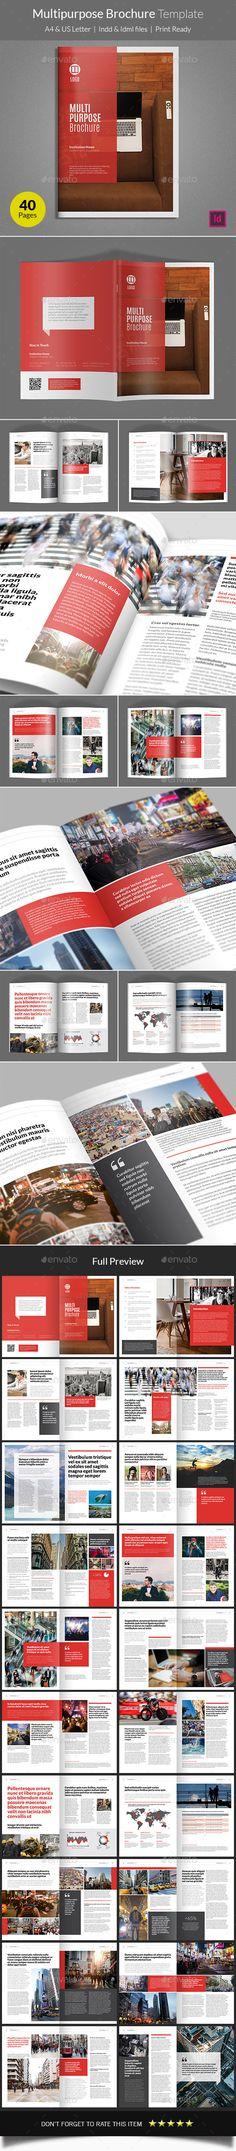 Multipurpose Brochure Template - Informational Brochures This brochure is suitable for companies or institutions in the publication. Download link: http://graphicriver.net/item/multipurpose-brochure-template/15587098?ref=heriwibowo